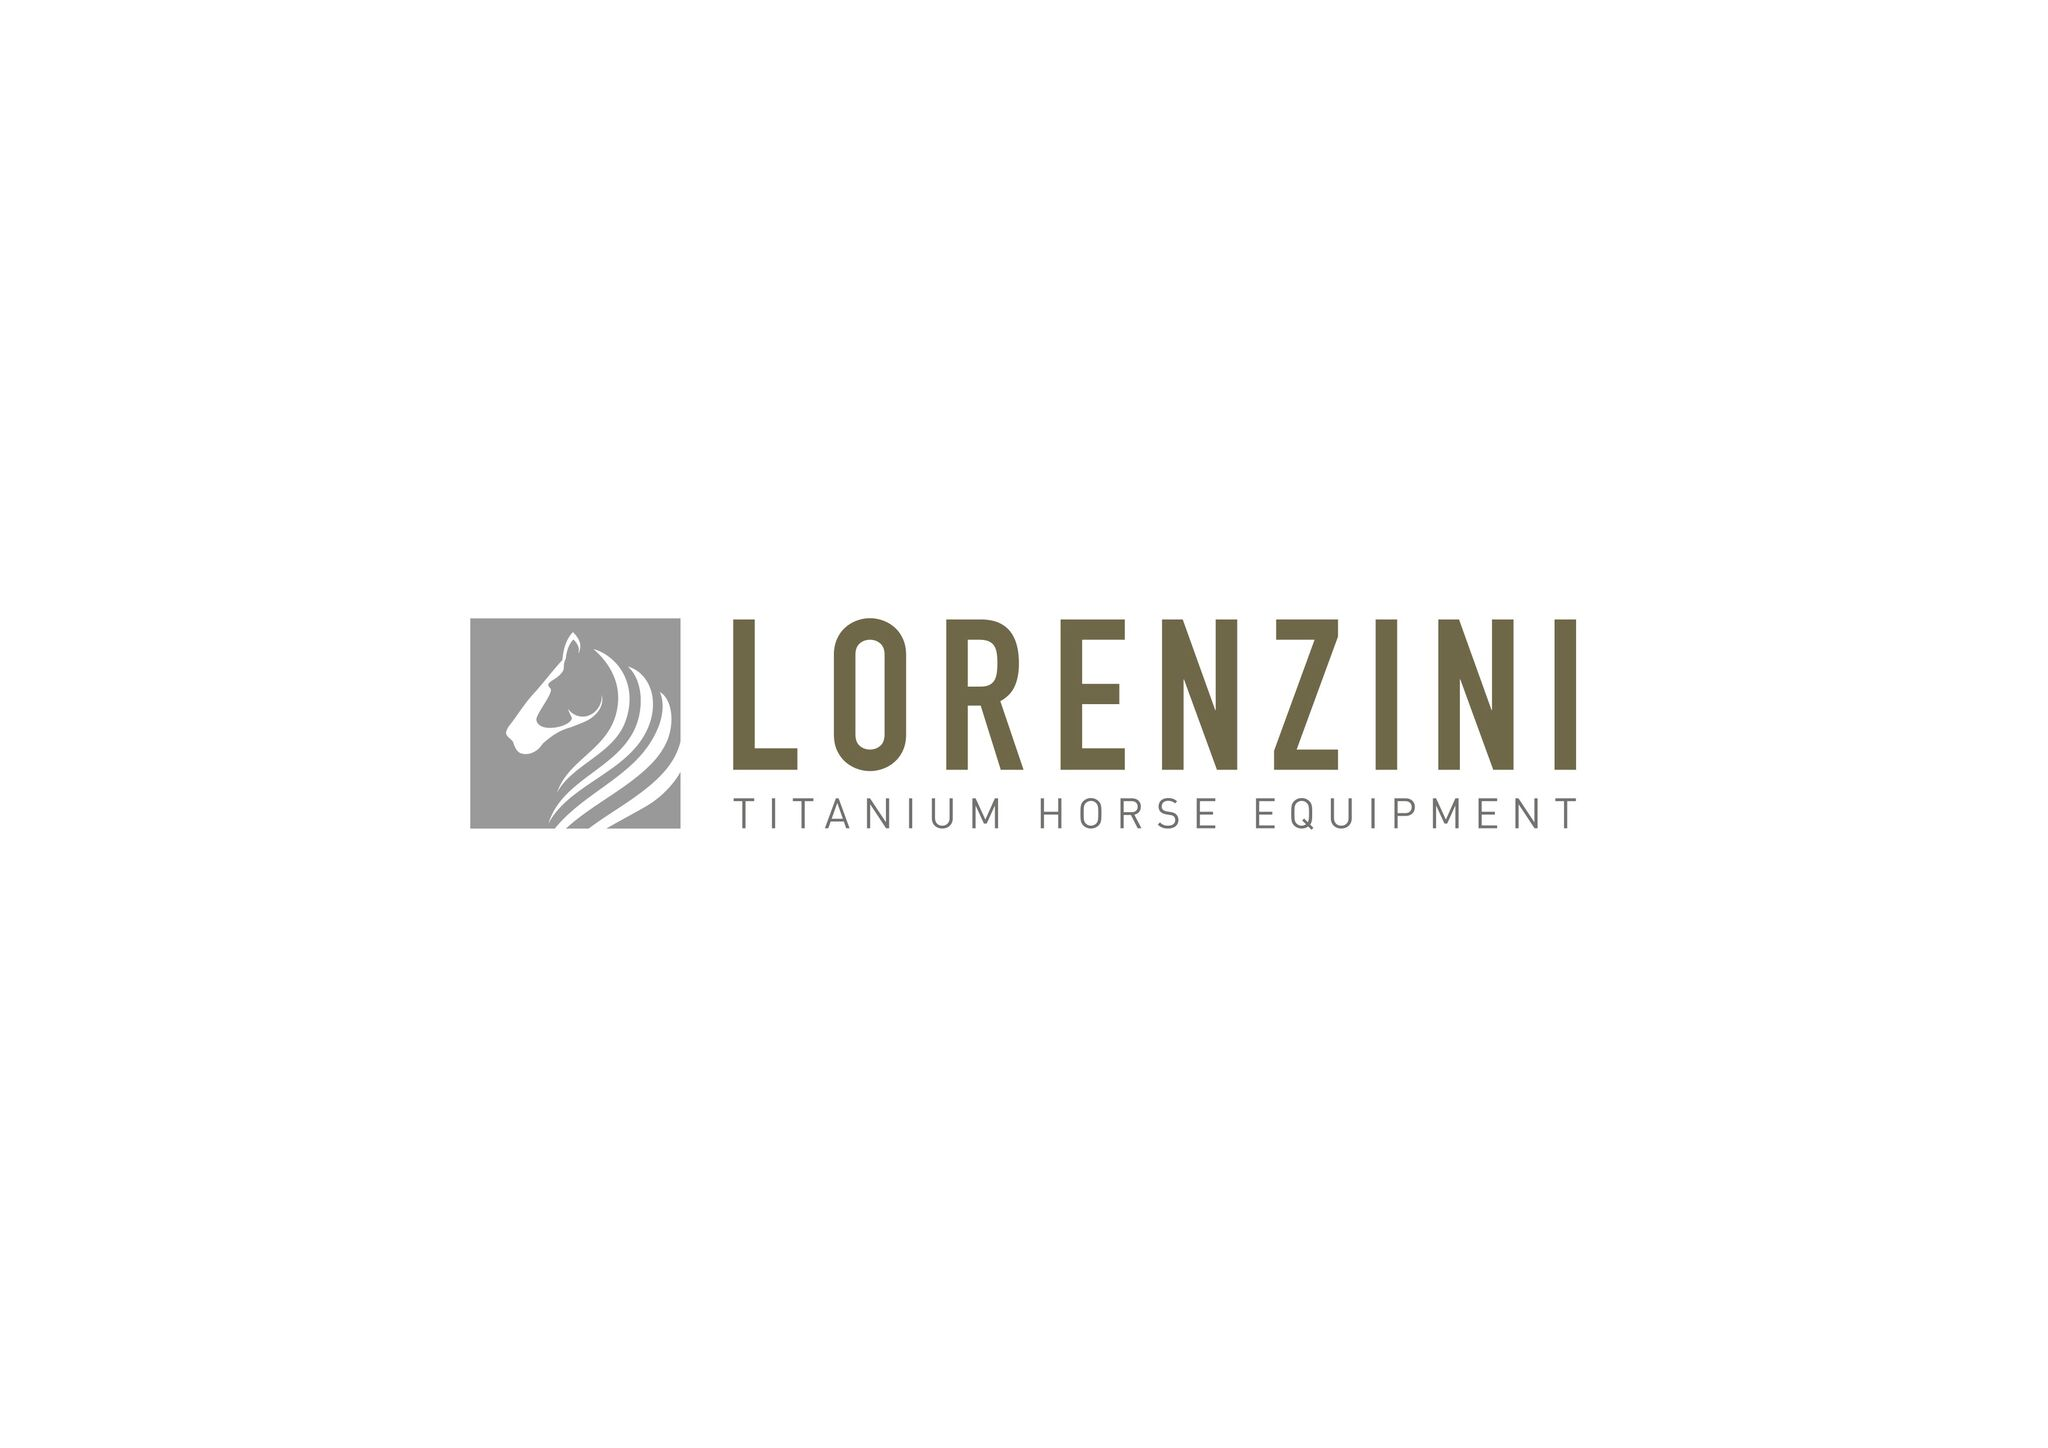 Lorenzini Titanium Horse Equipment